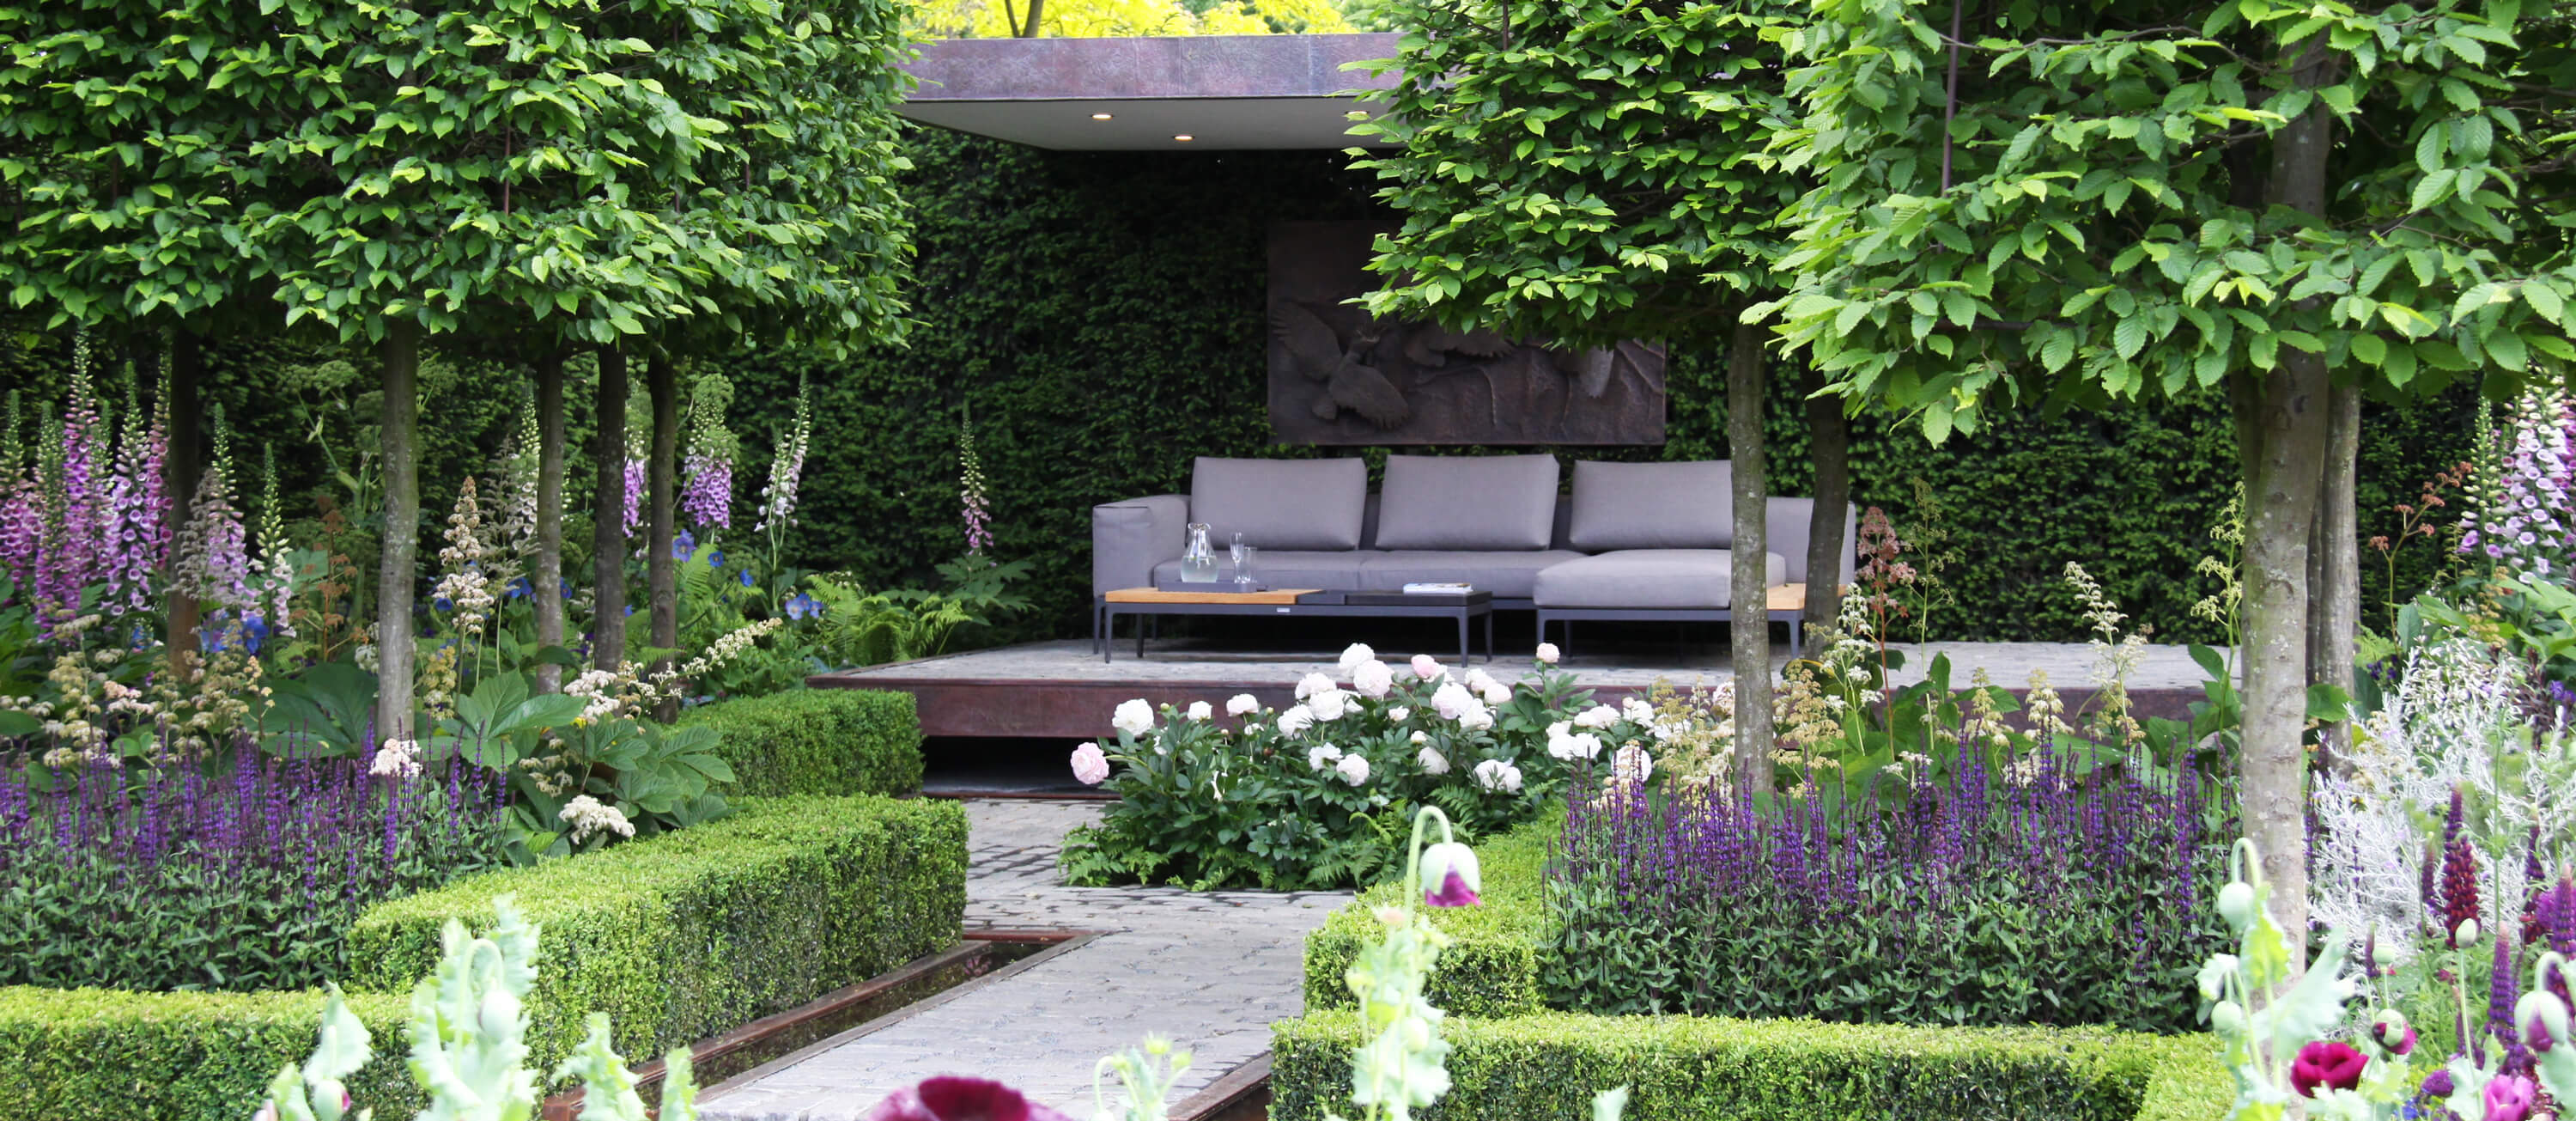 garten-inspiration an der chelsea flower show london